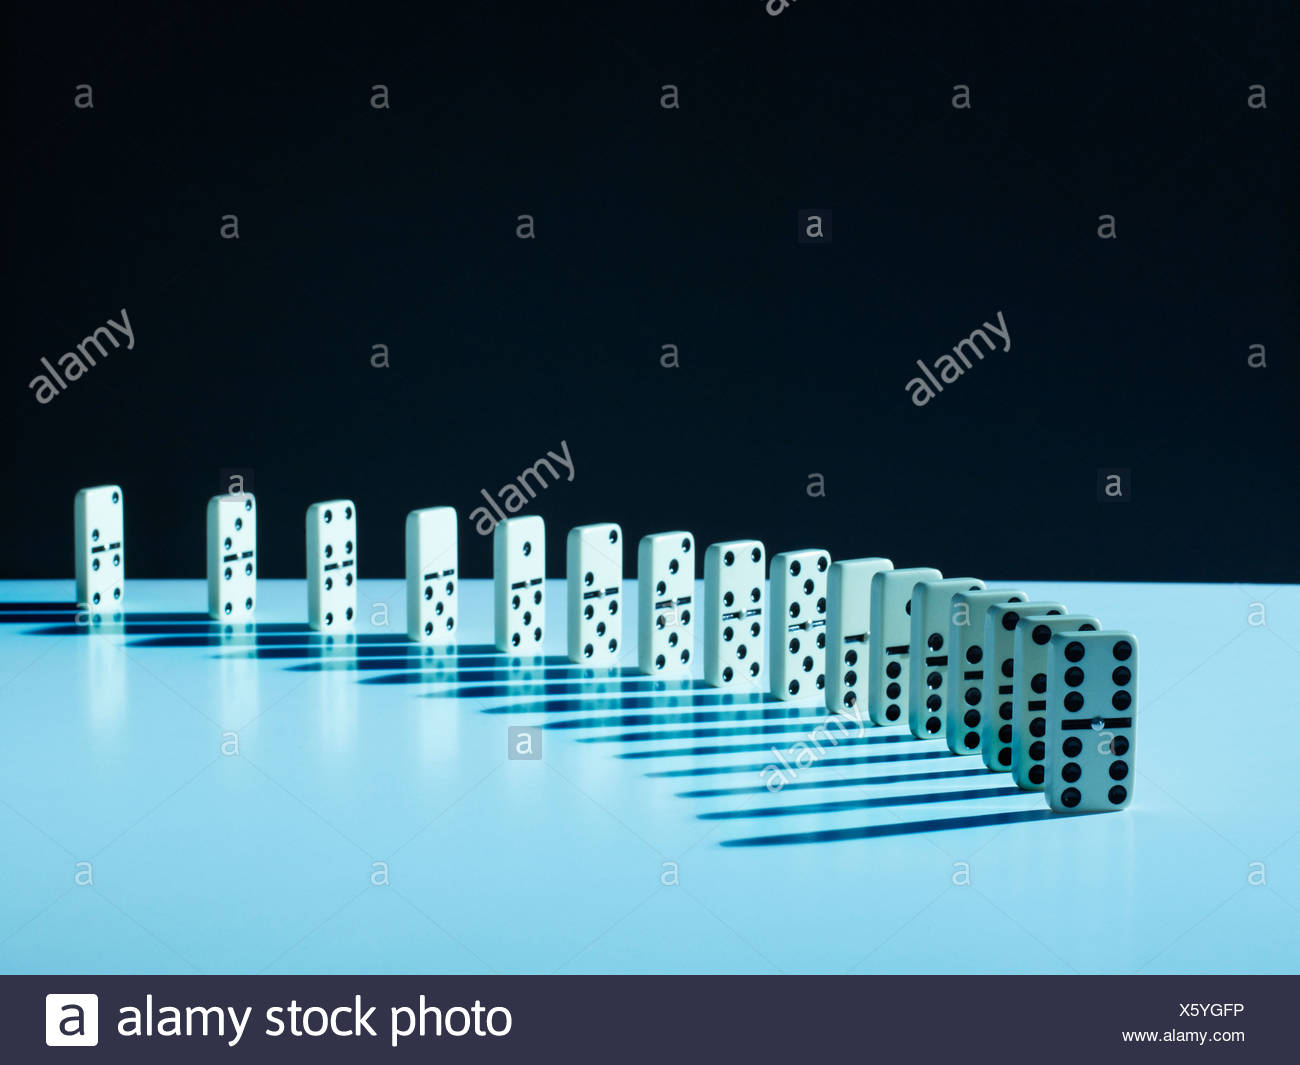 Dominoes standing in a row - Stock Image